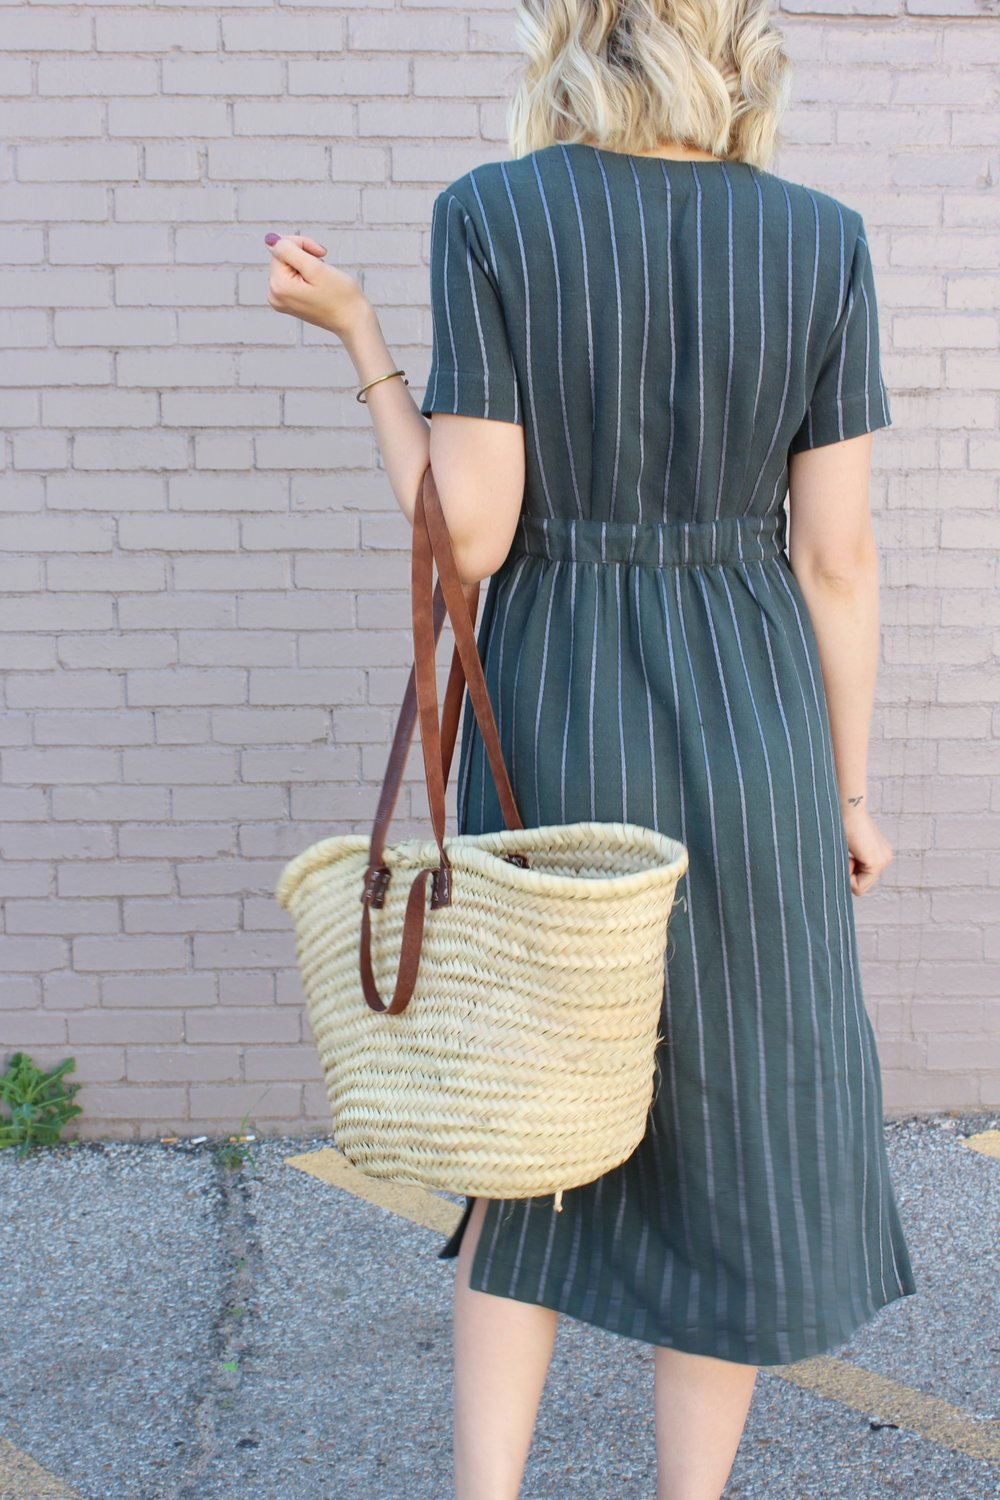 highlands_wrap_dress_well_fibre_6